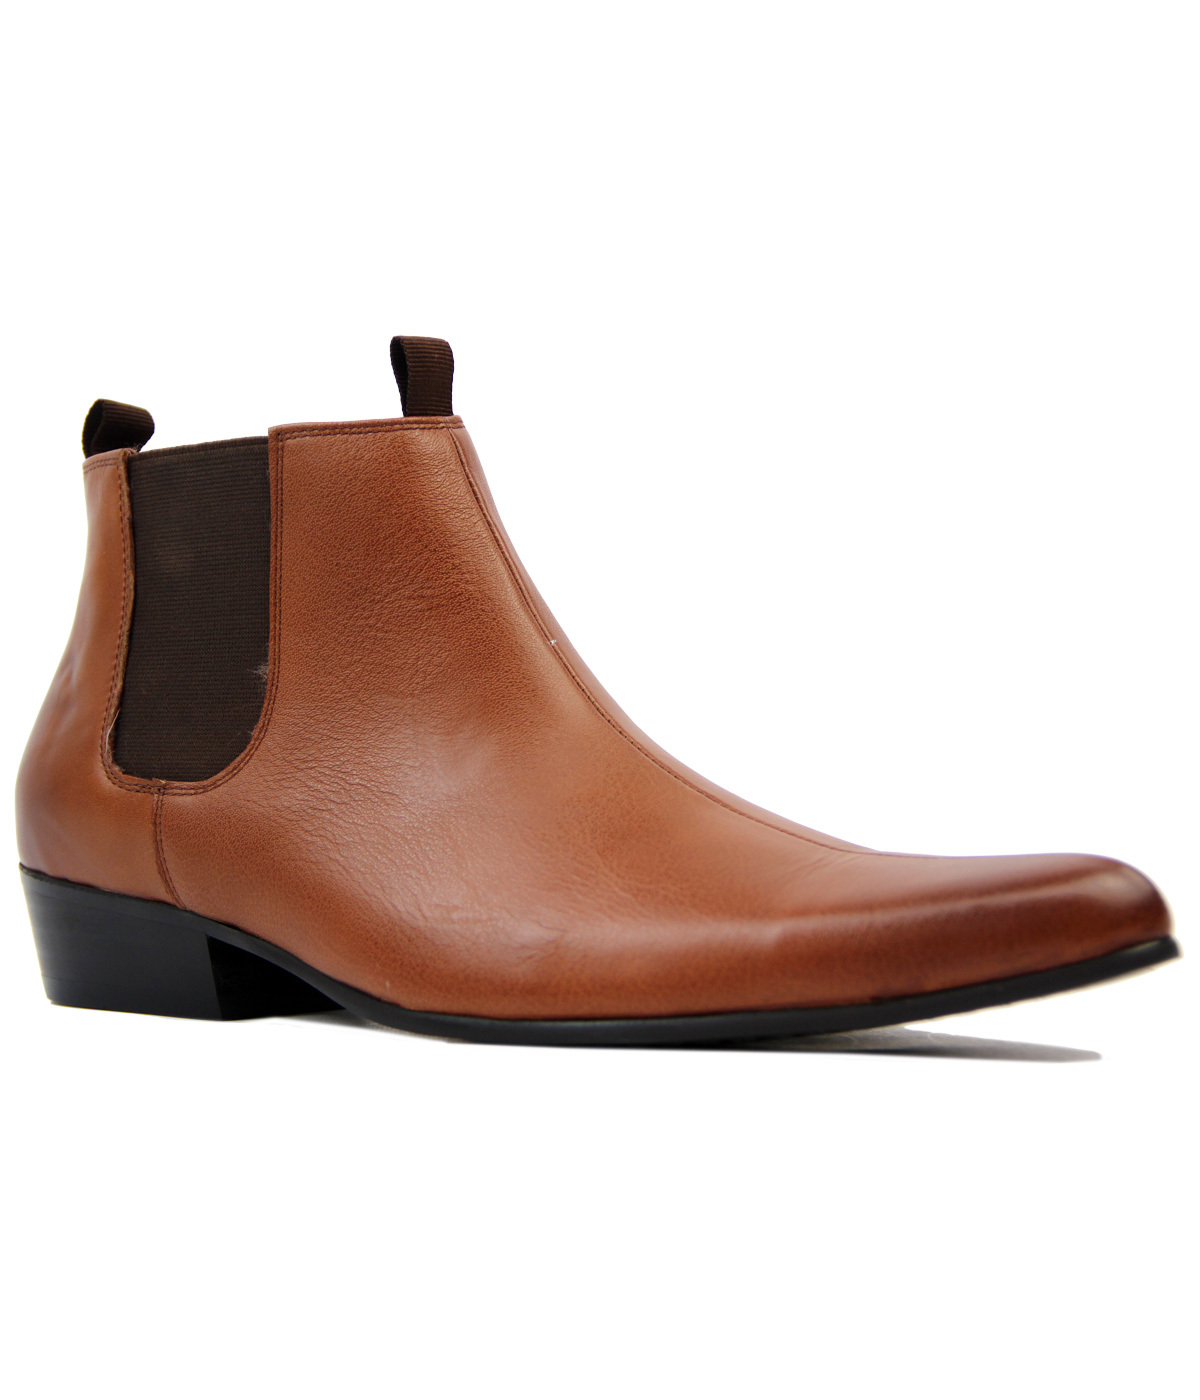 Lightfoot MADCAP ENGLAND Mod Chelsea Boots (Br)